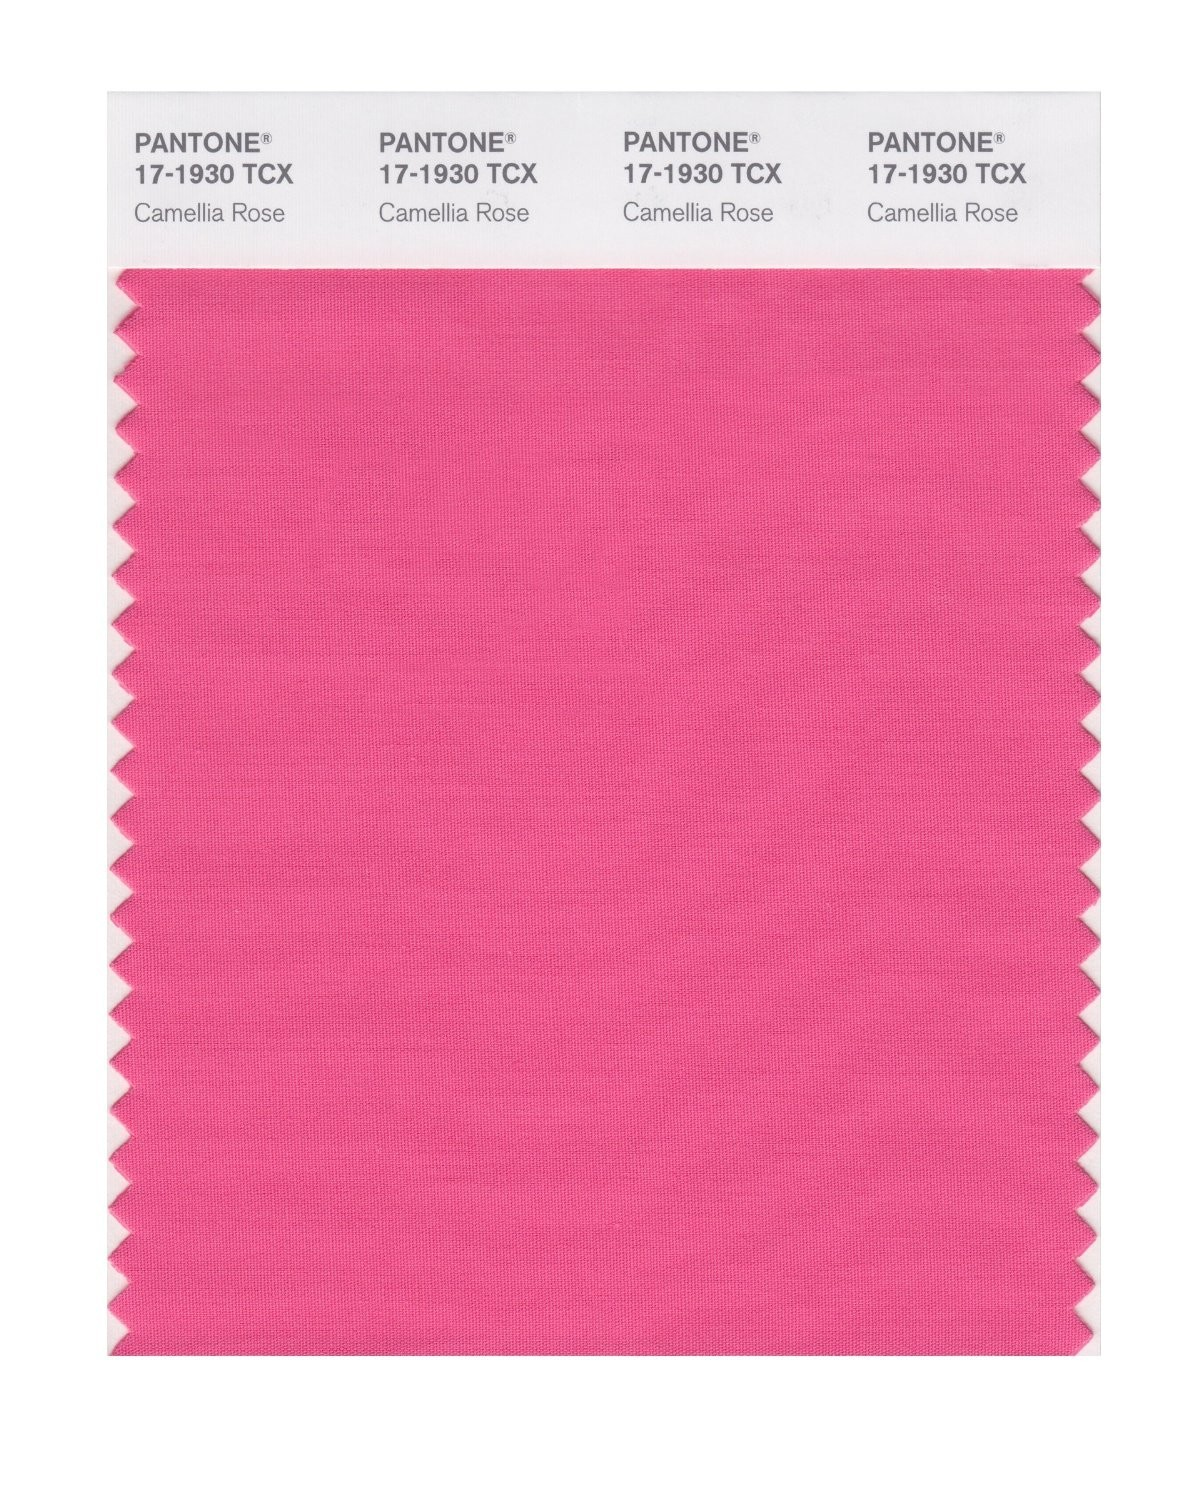 Pantone 17-1930 TCX Swatch Card Camellia Rose